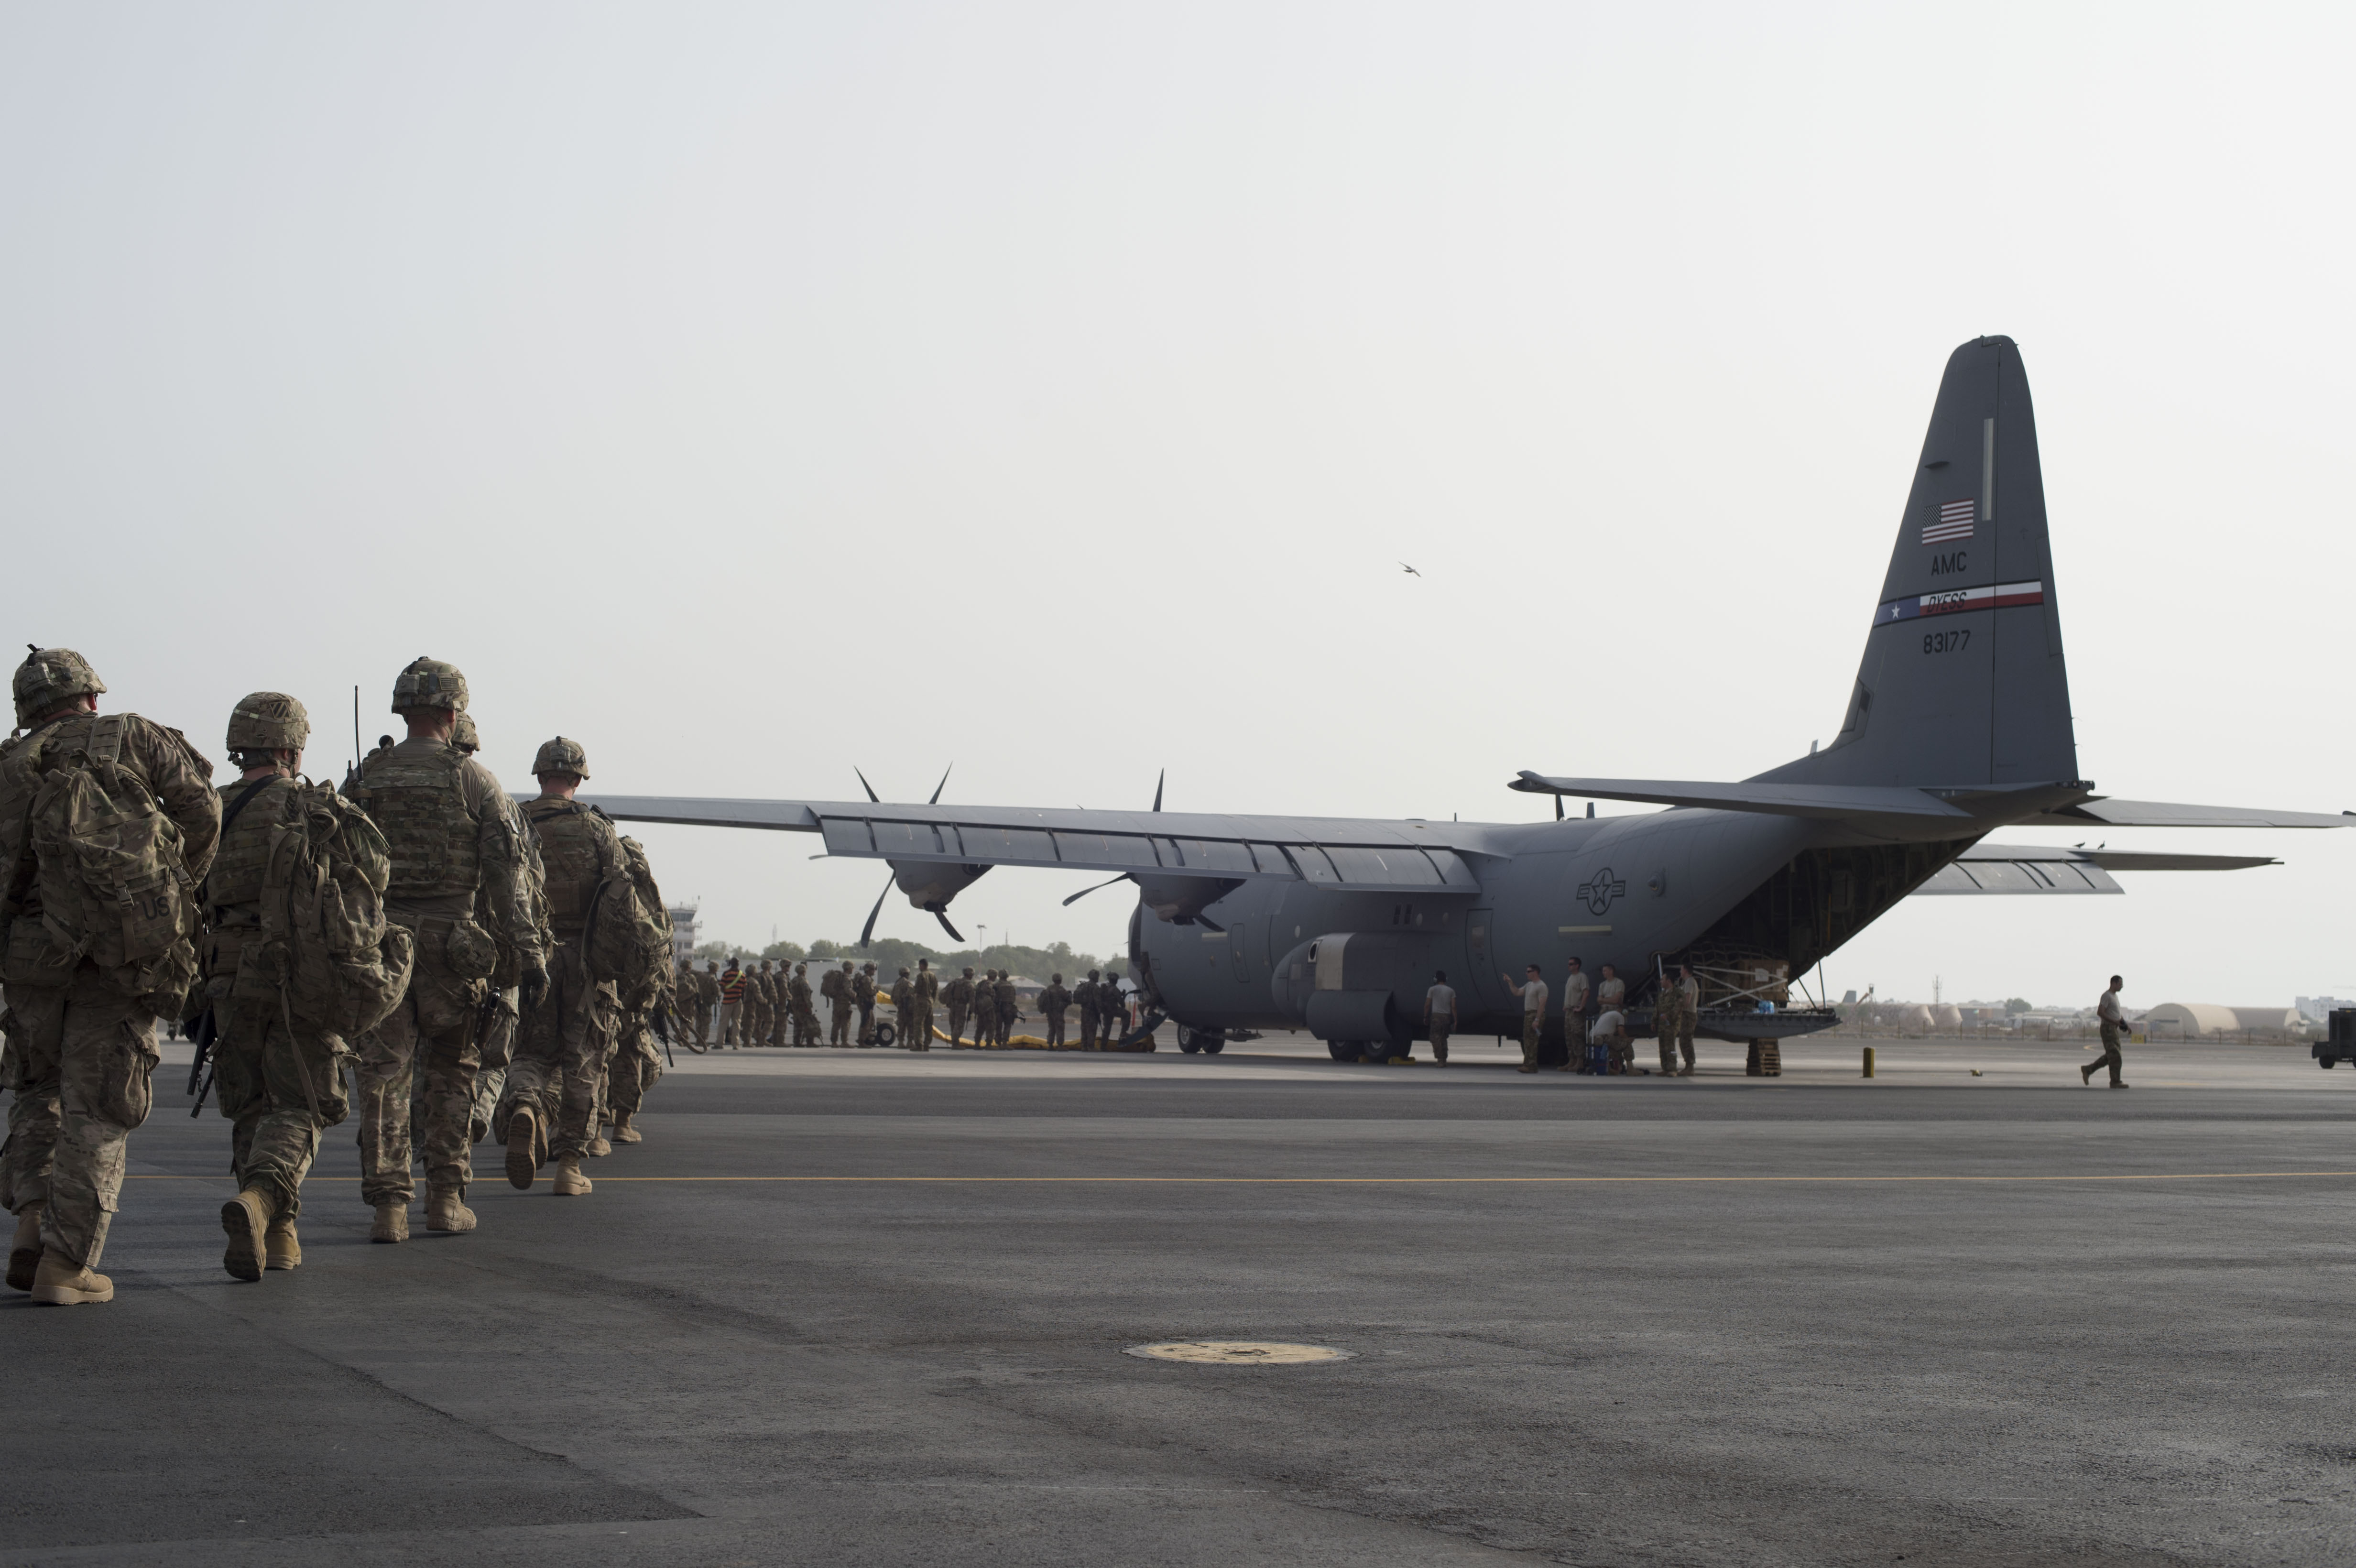 Tons of cargo and passengers are loaded on to a U.S. Air Force C-130J Hercules during an East African Response Force validation exercise May 27, 2016, at Camp Lemonnier, Djibouti. The mission of the EARF is to provide rapidly deployable assets at a moment's notice to reinforce embassies within the Combined Joint Task Force-Horn of Africa area of responsibility. (U.S. Air Force photo by Staff Sgt. Eric Summers, Jr./Released)